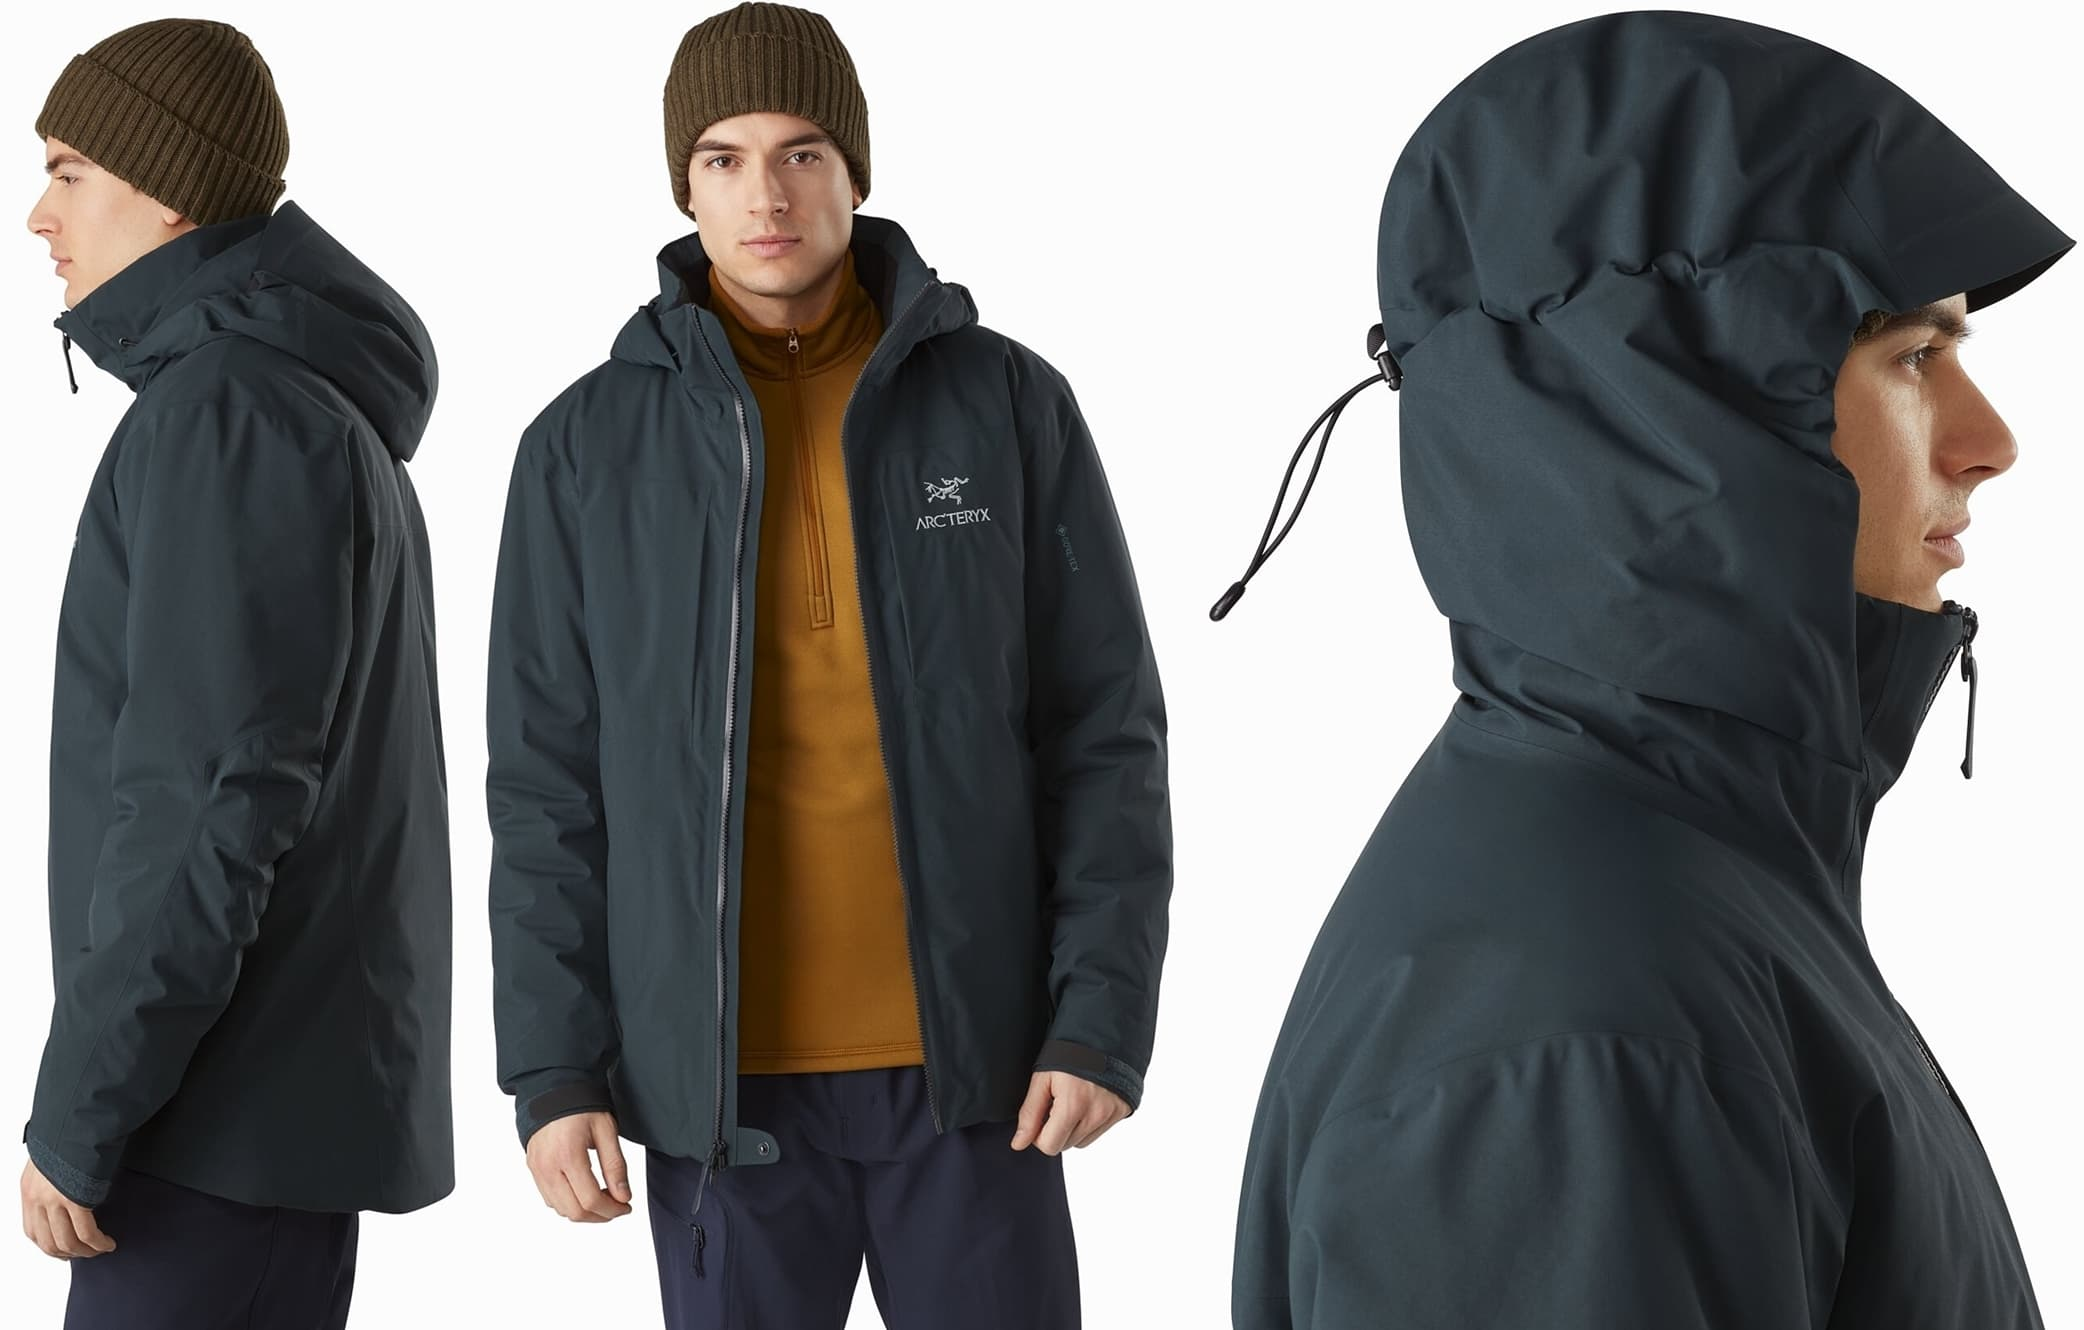 The warmest fully waterproof rain jacket in the Arc'teryx Essentials collection